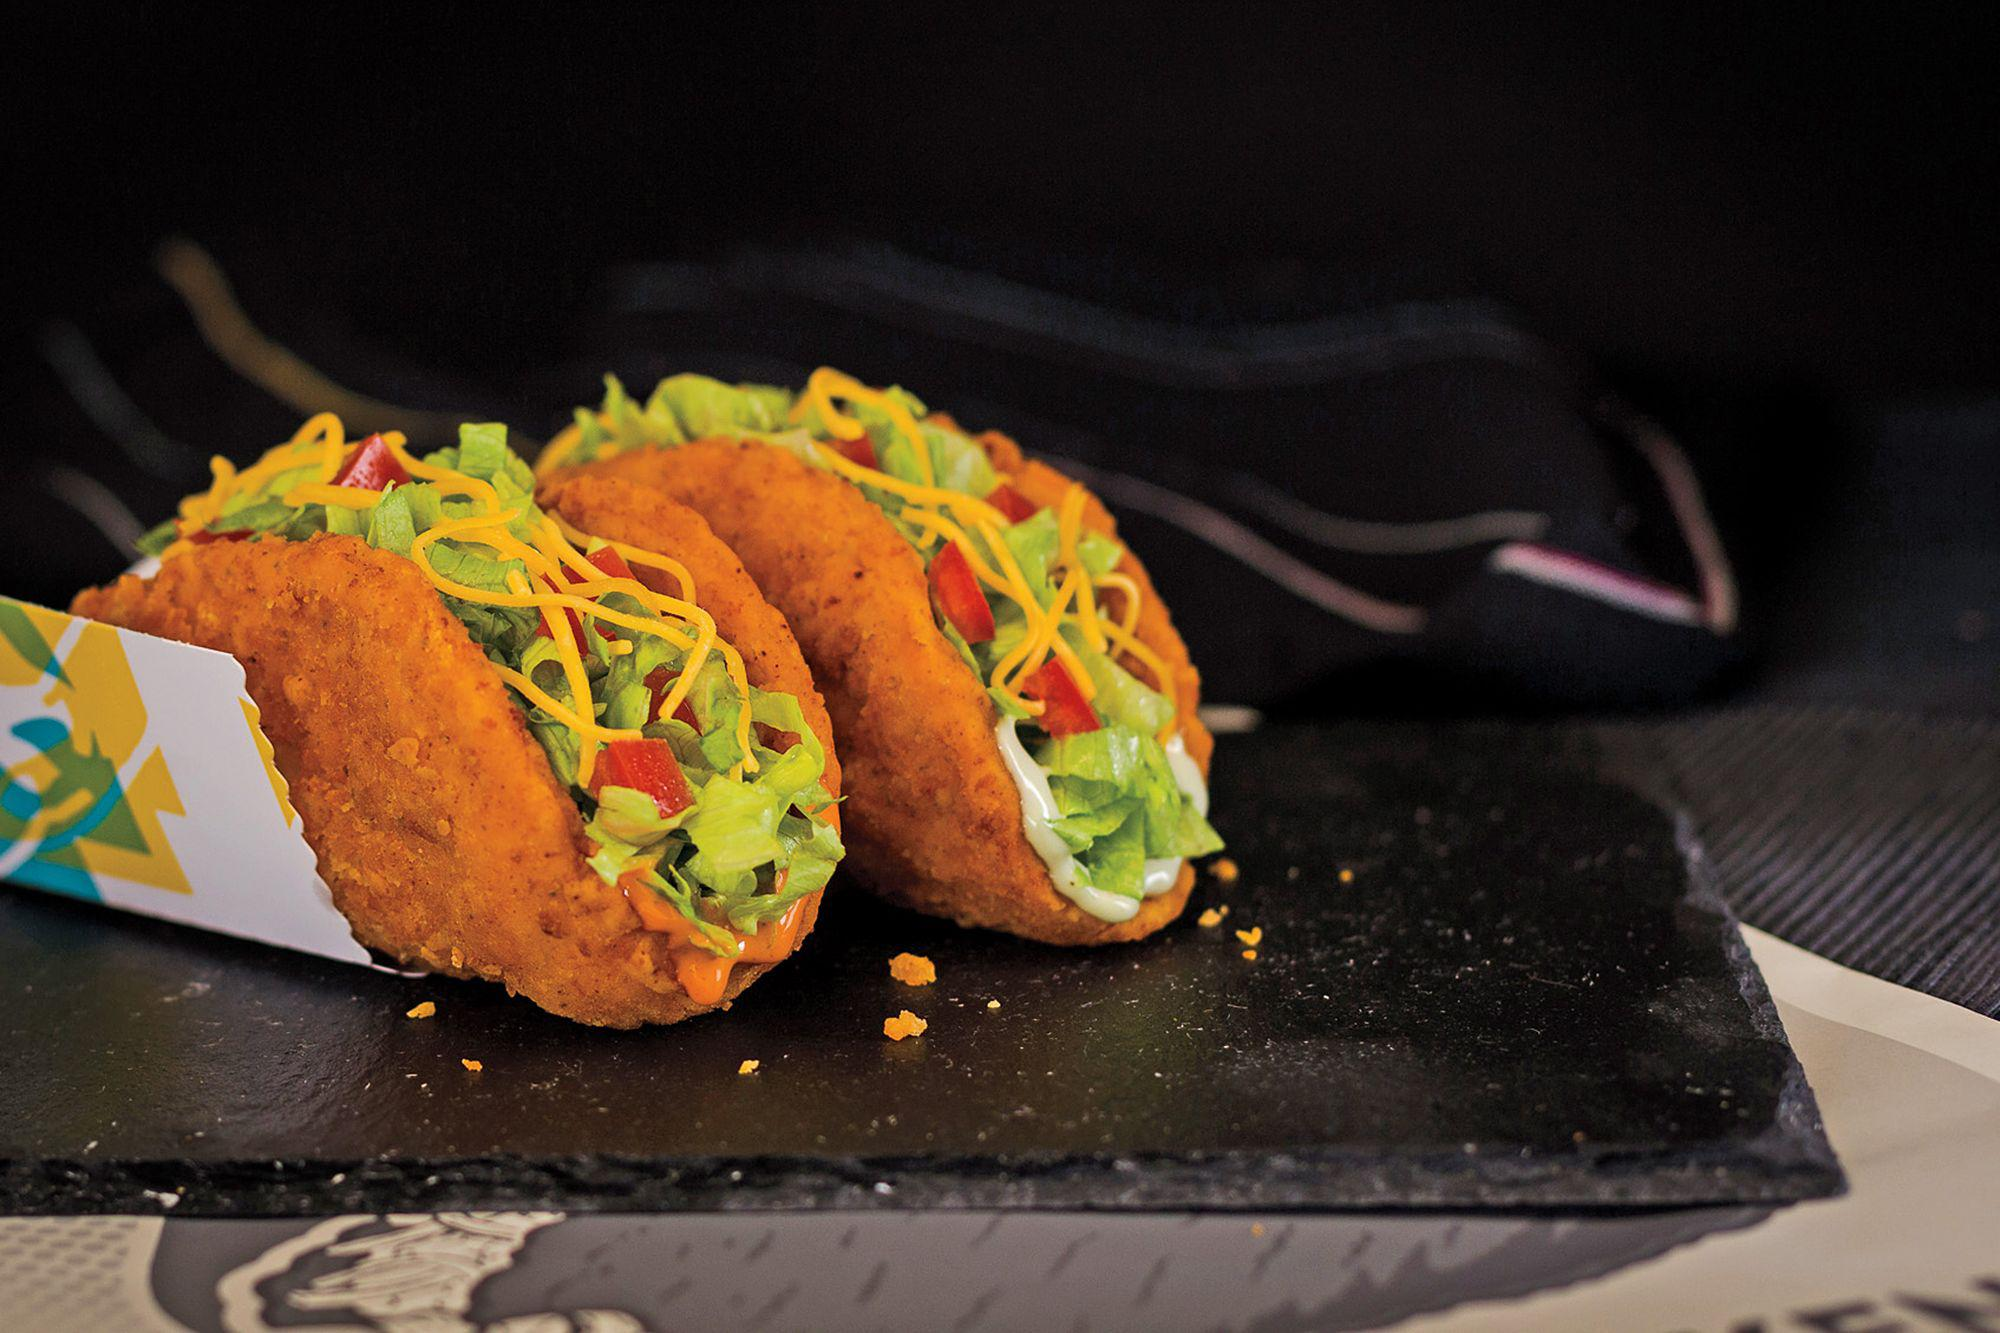 How to make taco bell's naked chicken chalupa